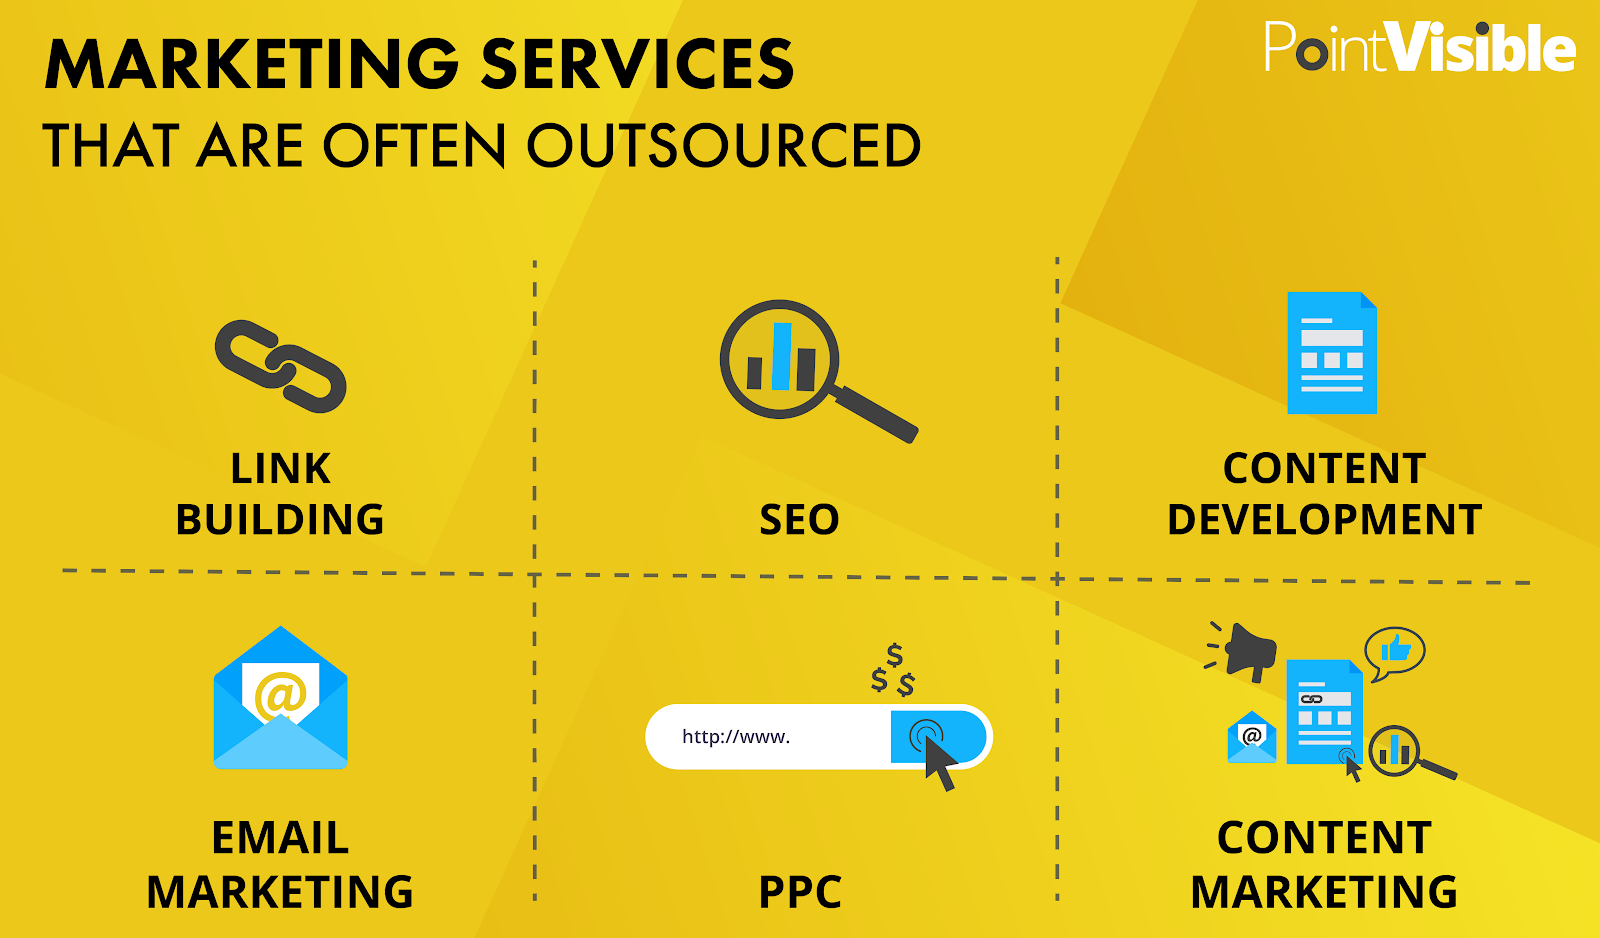 marketing services that are often outsourced